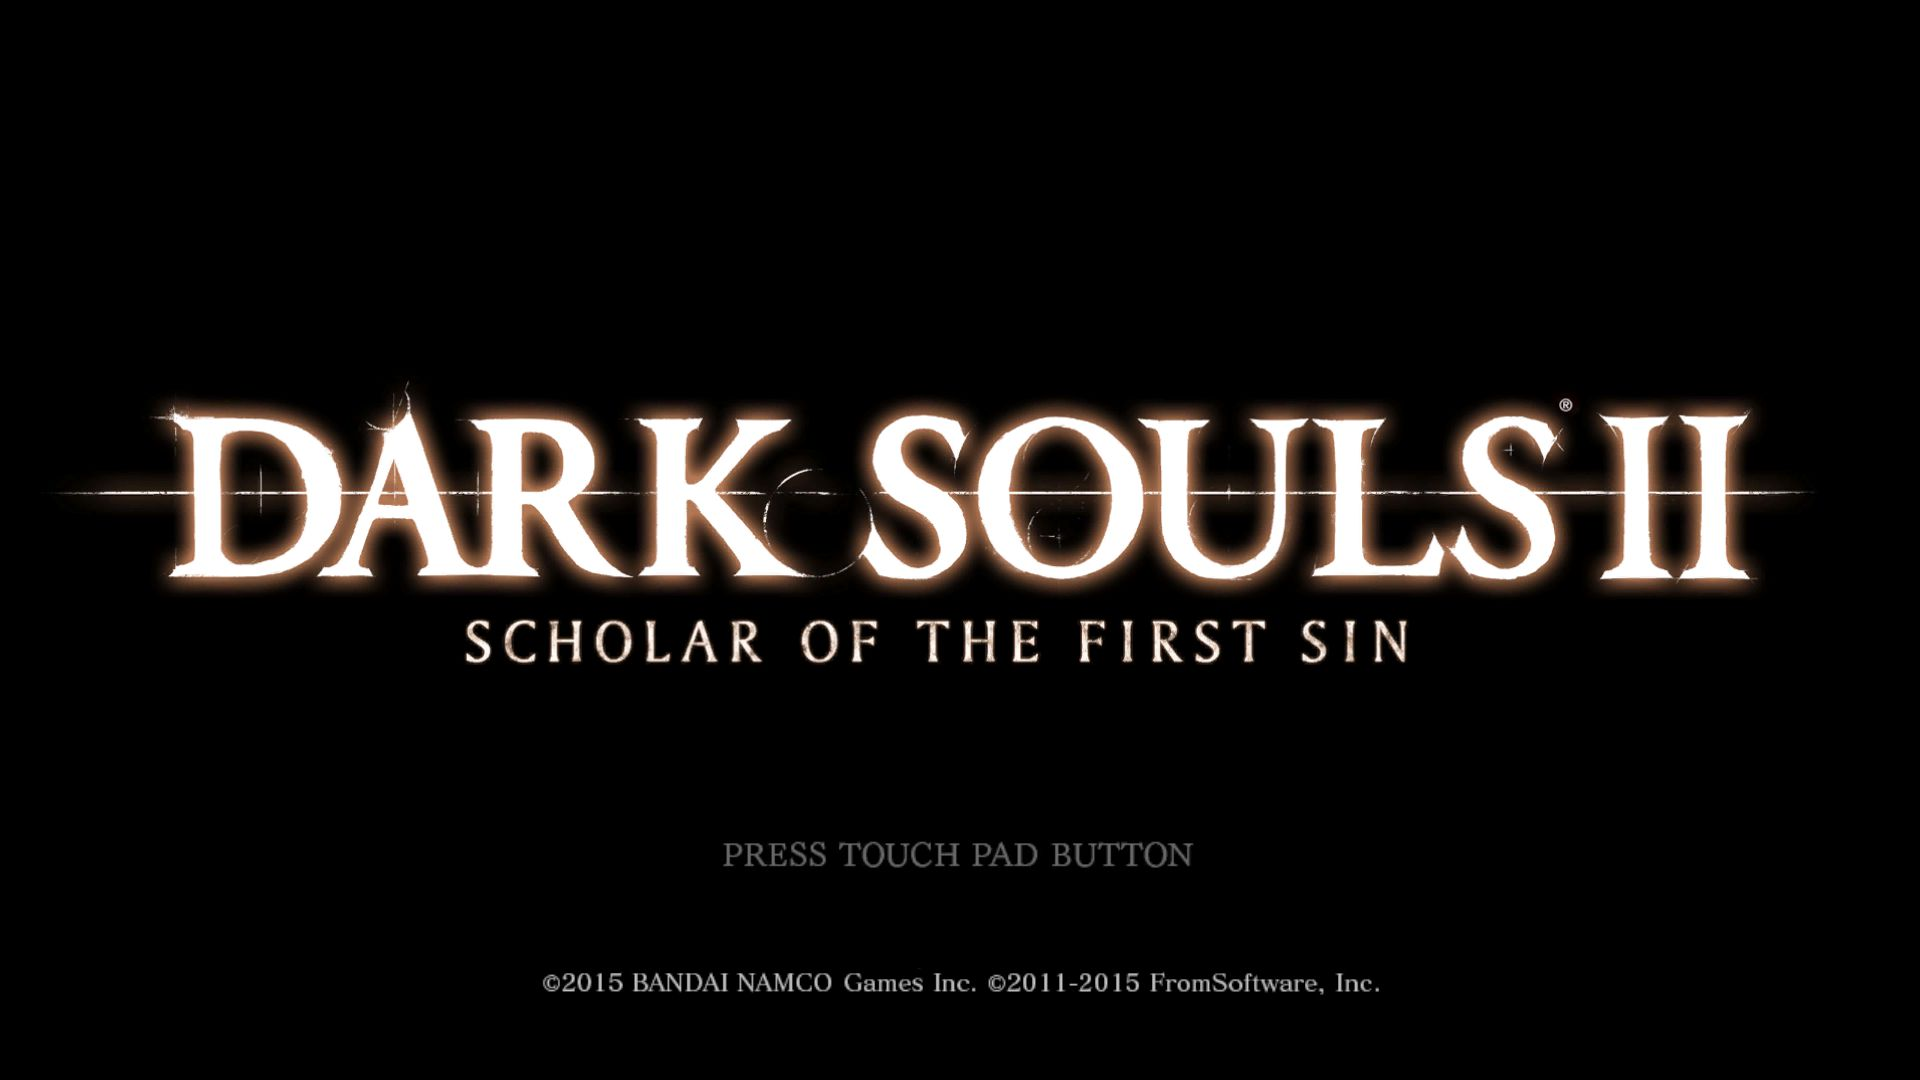 DARK SOULS Ⅱ SCHOLAR OF THE FIRST SIN Vol.10